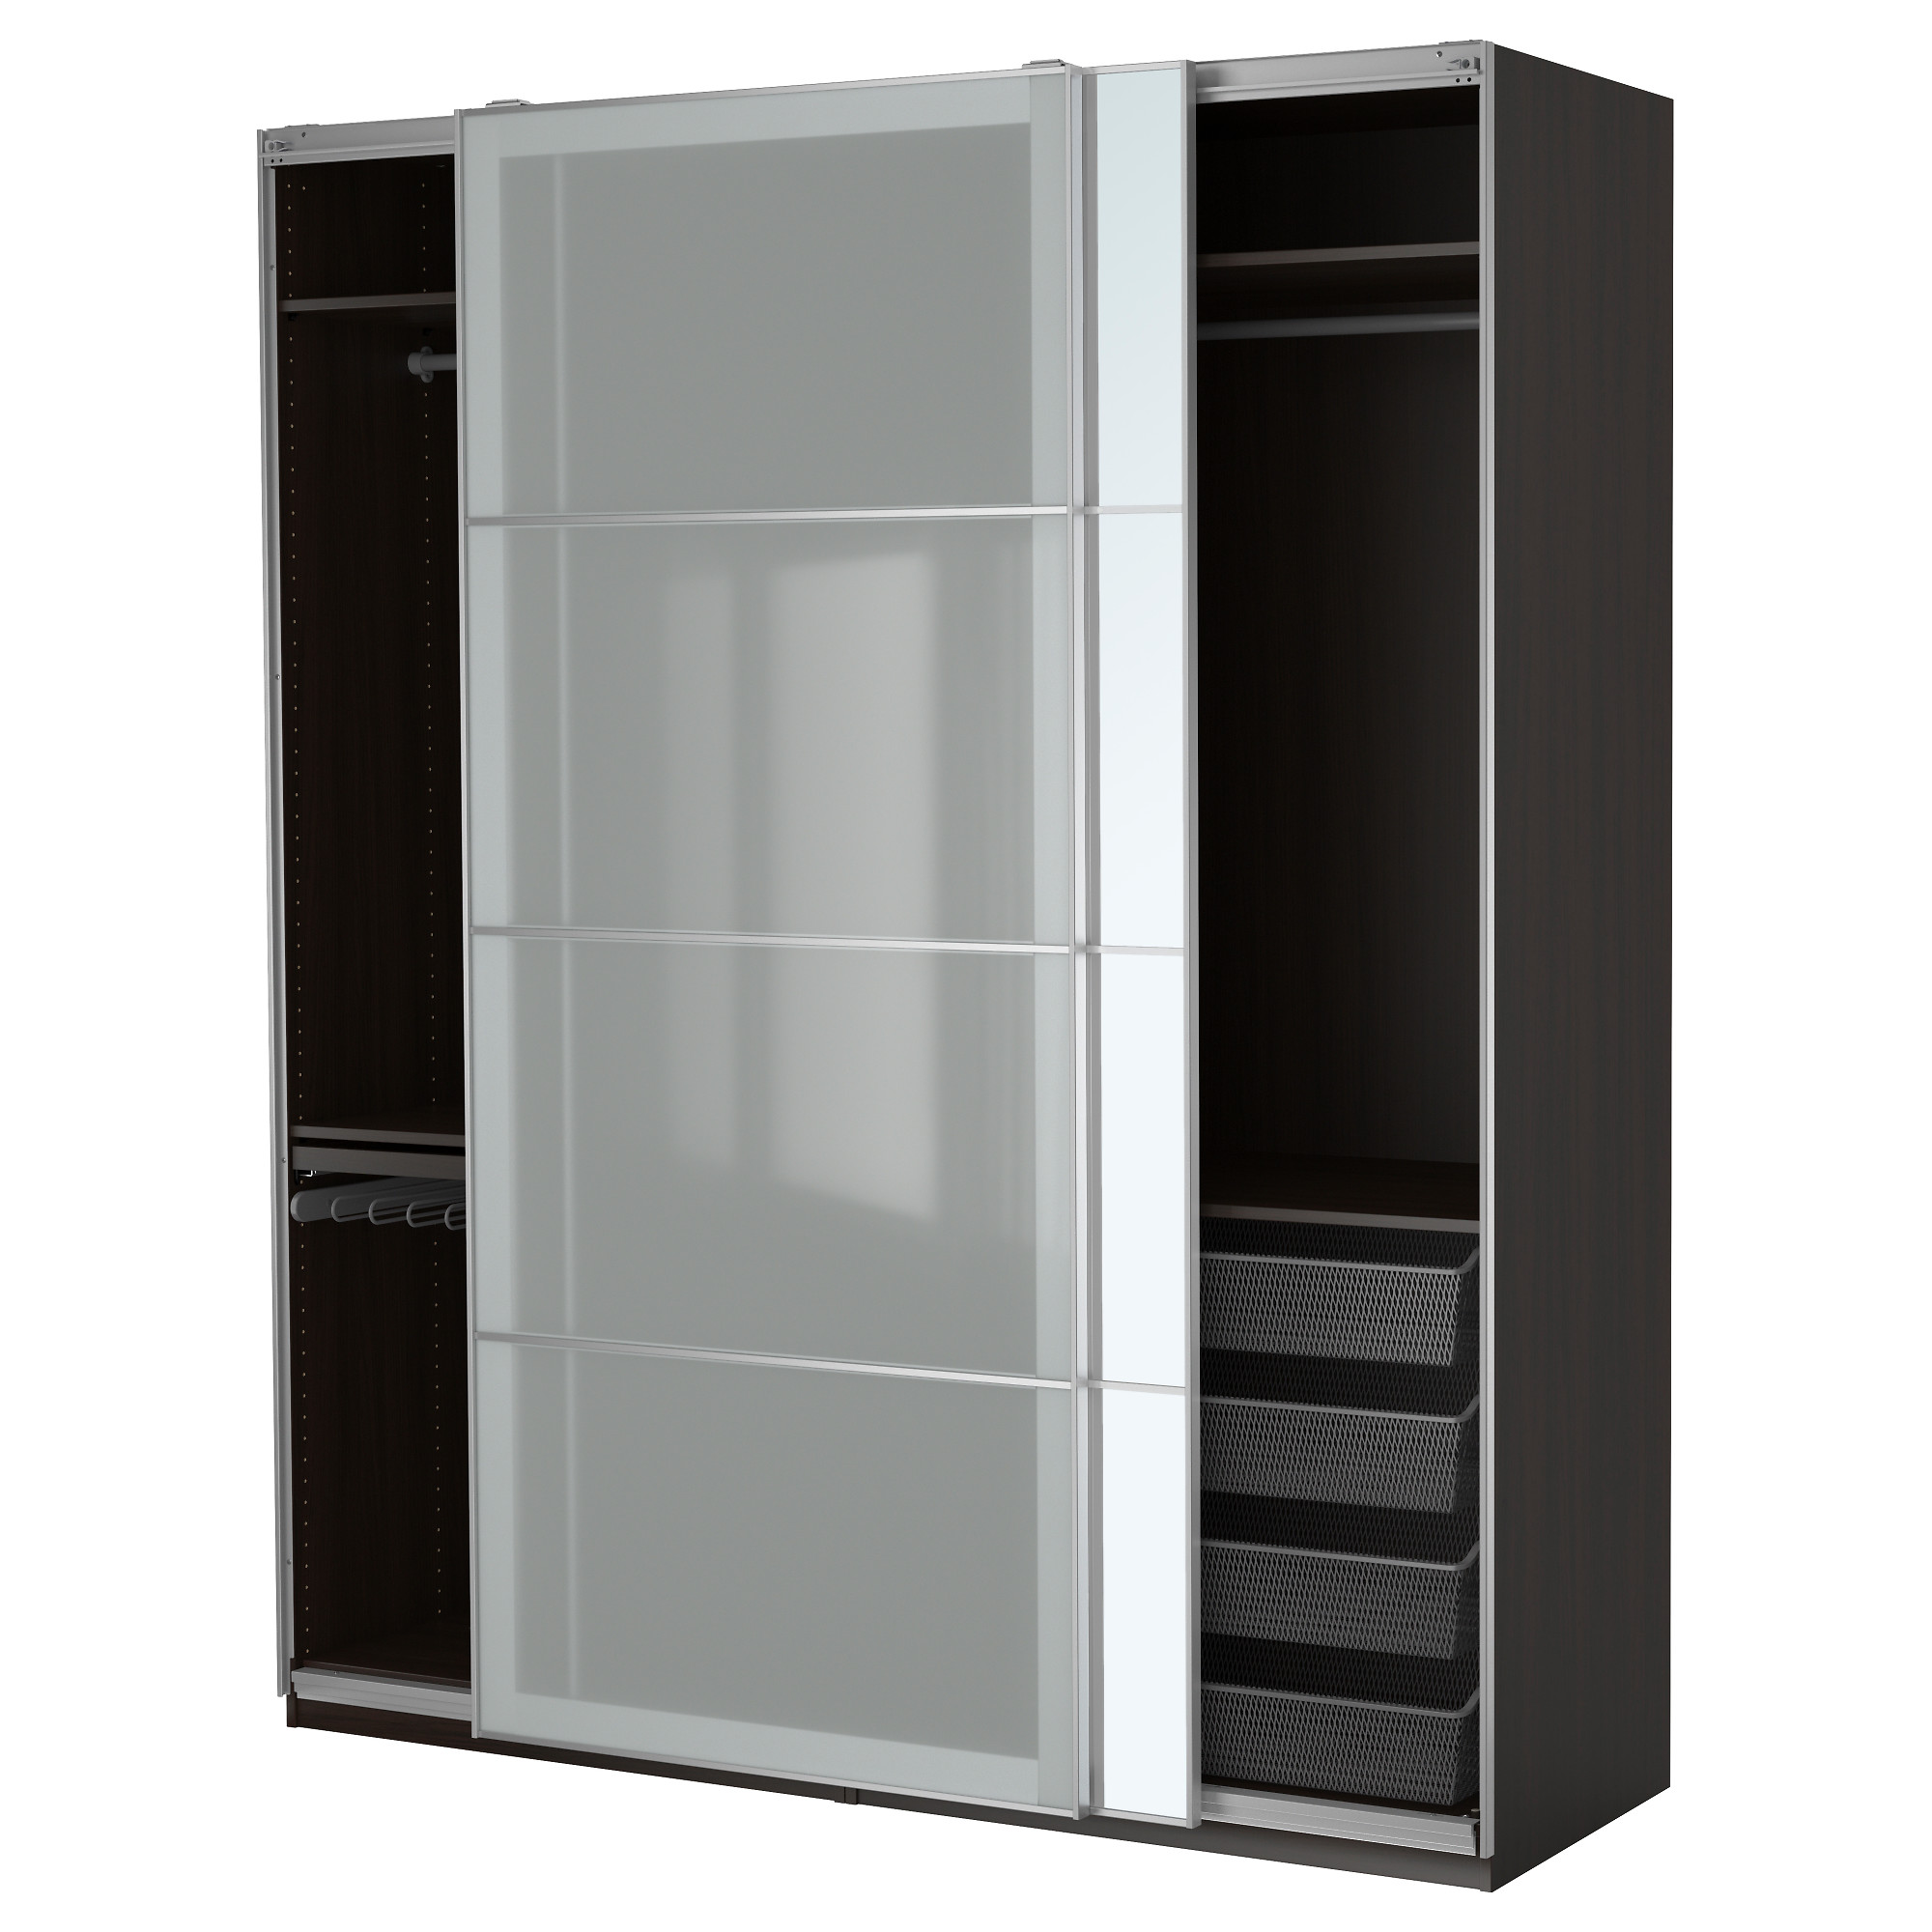 Armoire chambre porte coulissante for Ikea armoire porte coulissante